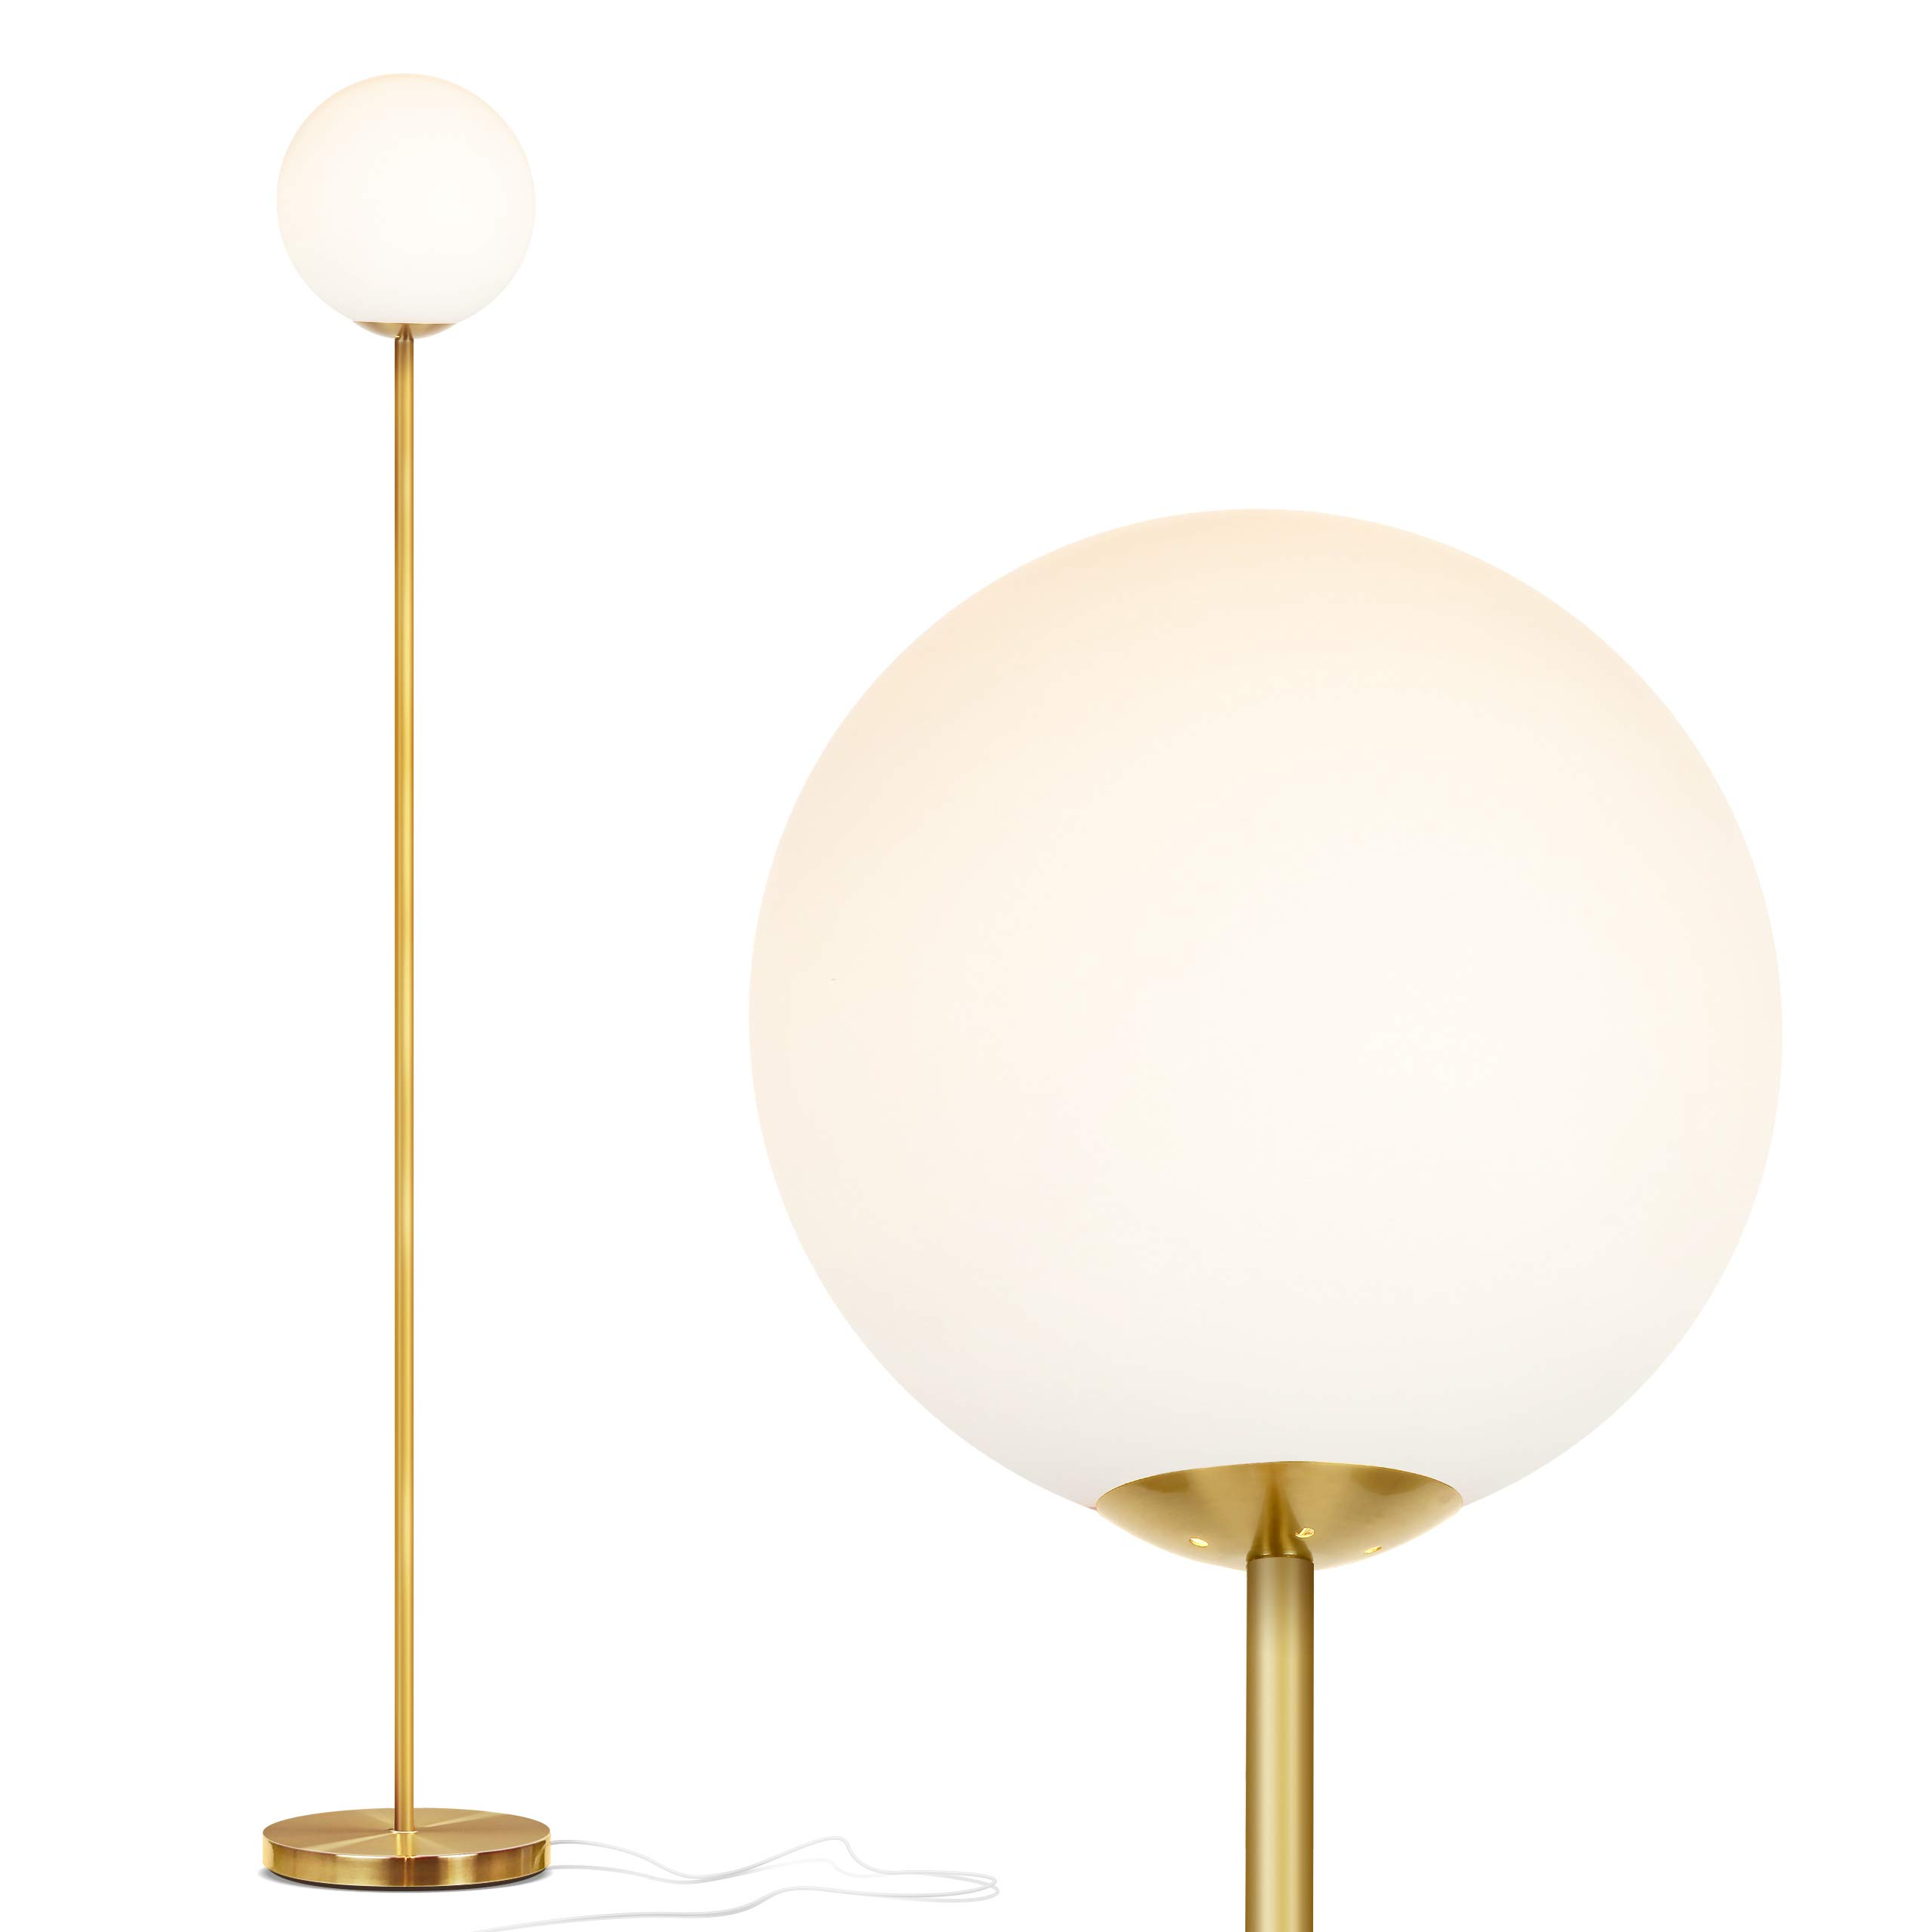 Brightech Luna - Frosted Glass Globe LED Floor Lamp - Mid Century Modern, Standing Lamp for Living Rooms - Tall Pole Light for Bedroom & Office - with LED Bulb - Antique Brass by Brightech